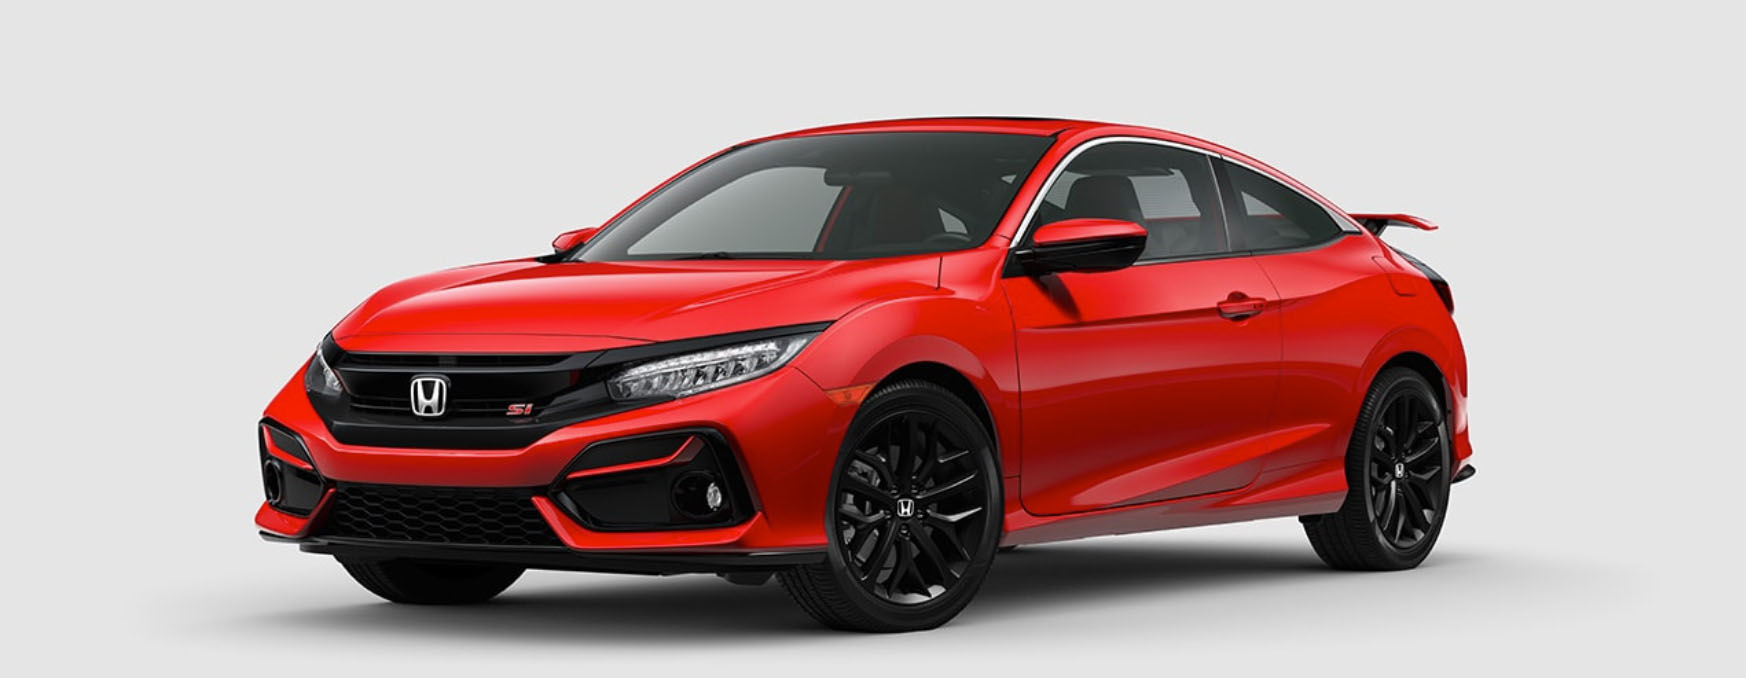 2020 Honda Civic Si Coupe For Sale in Manhasset